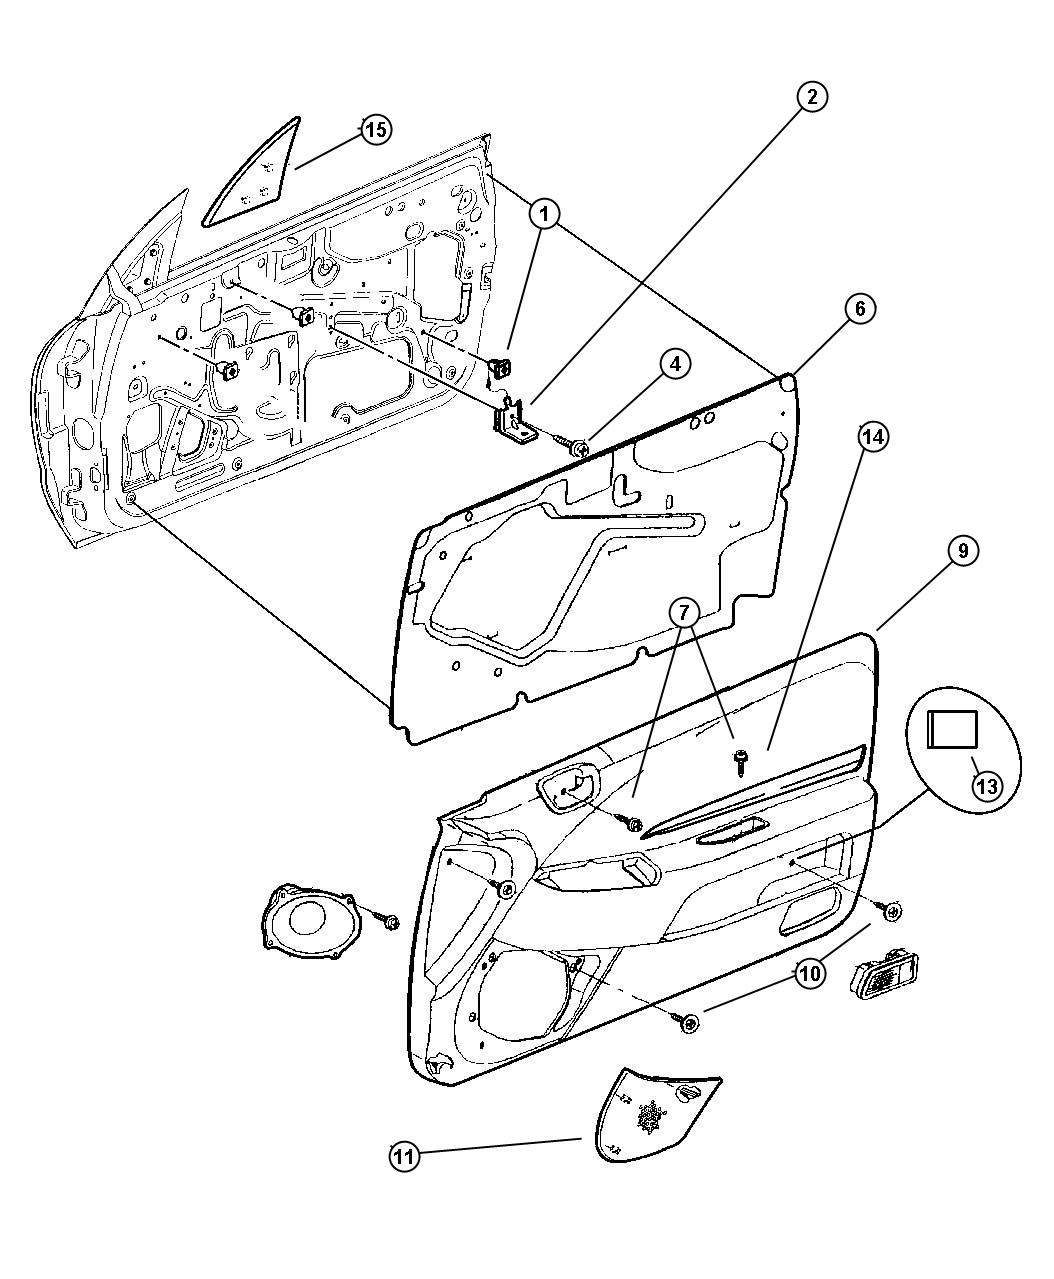 acura legend motor mount diagram  acura  auto wiring diagram